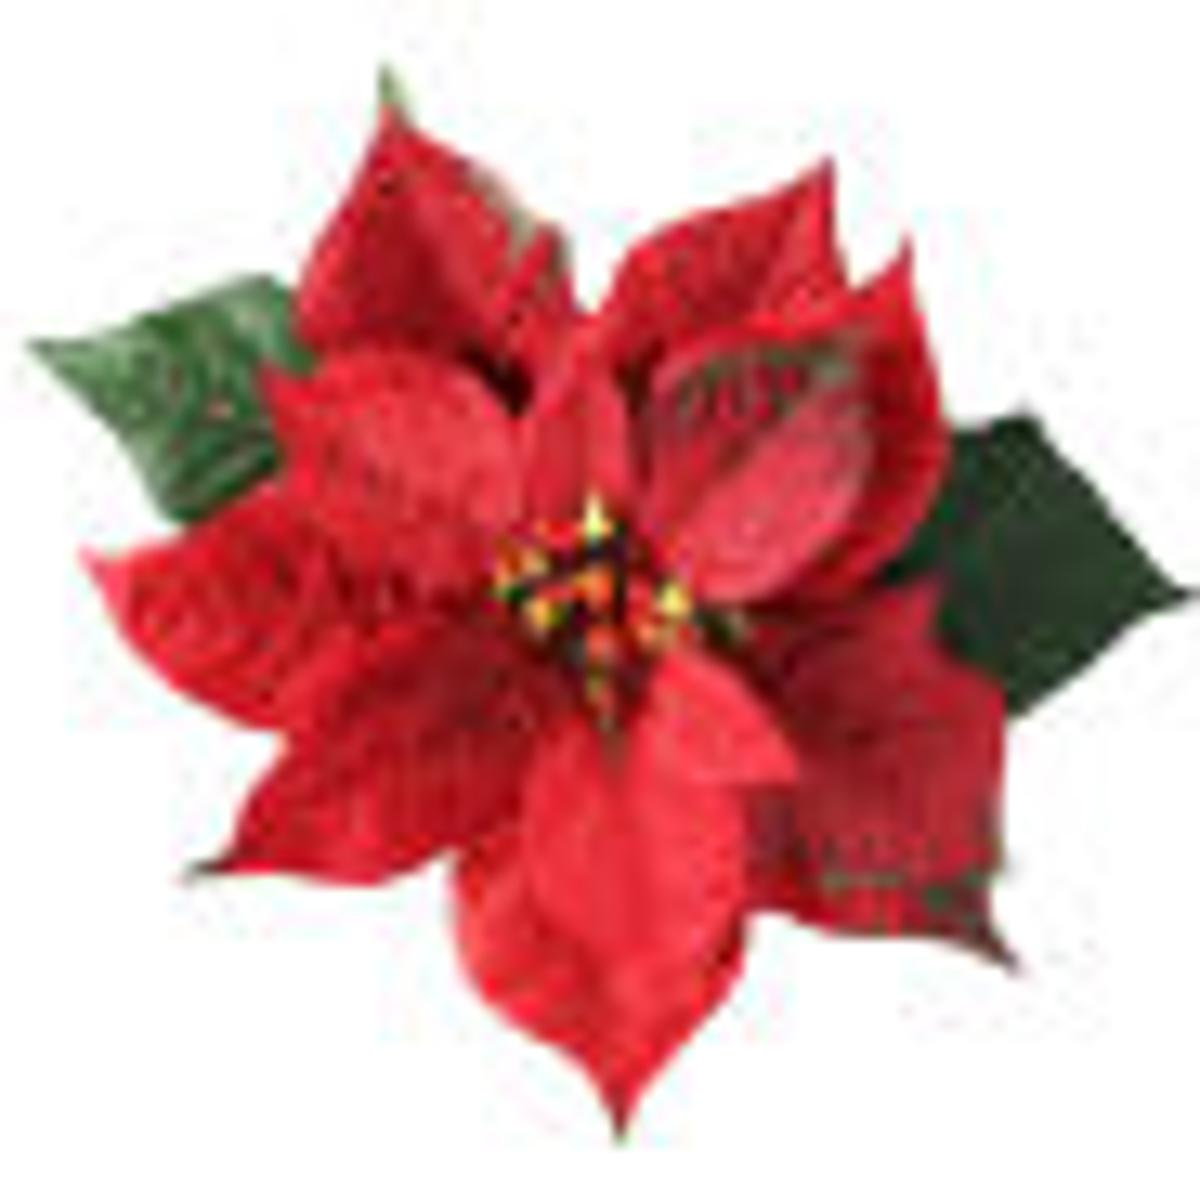 Red Christmas Flower.Ten Things To Know About A Christmas Flower Favorite Home